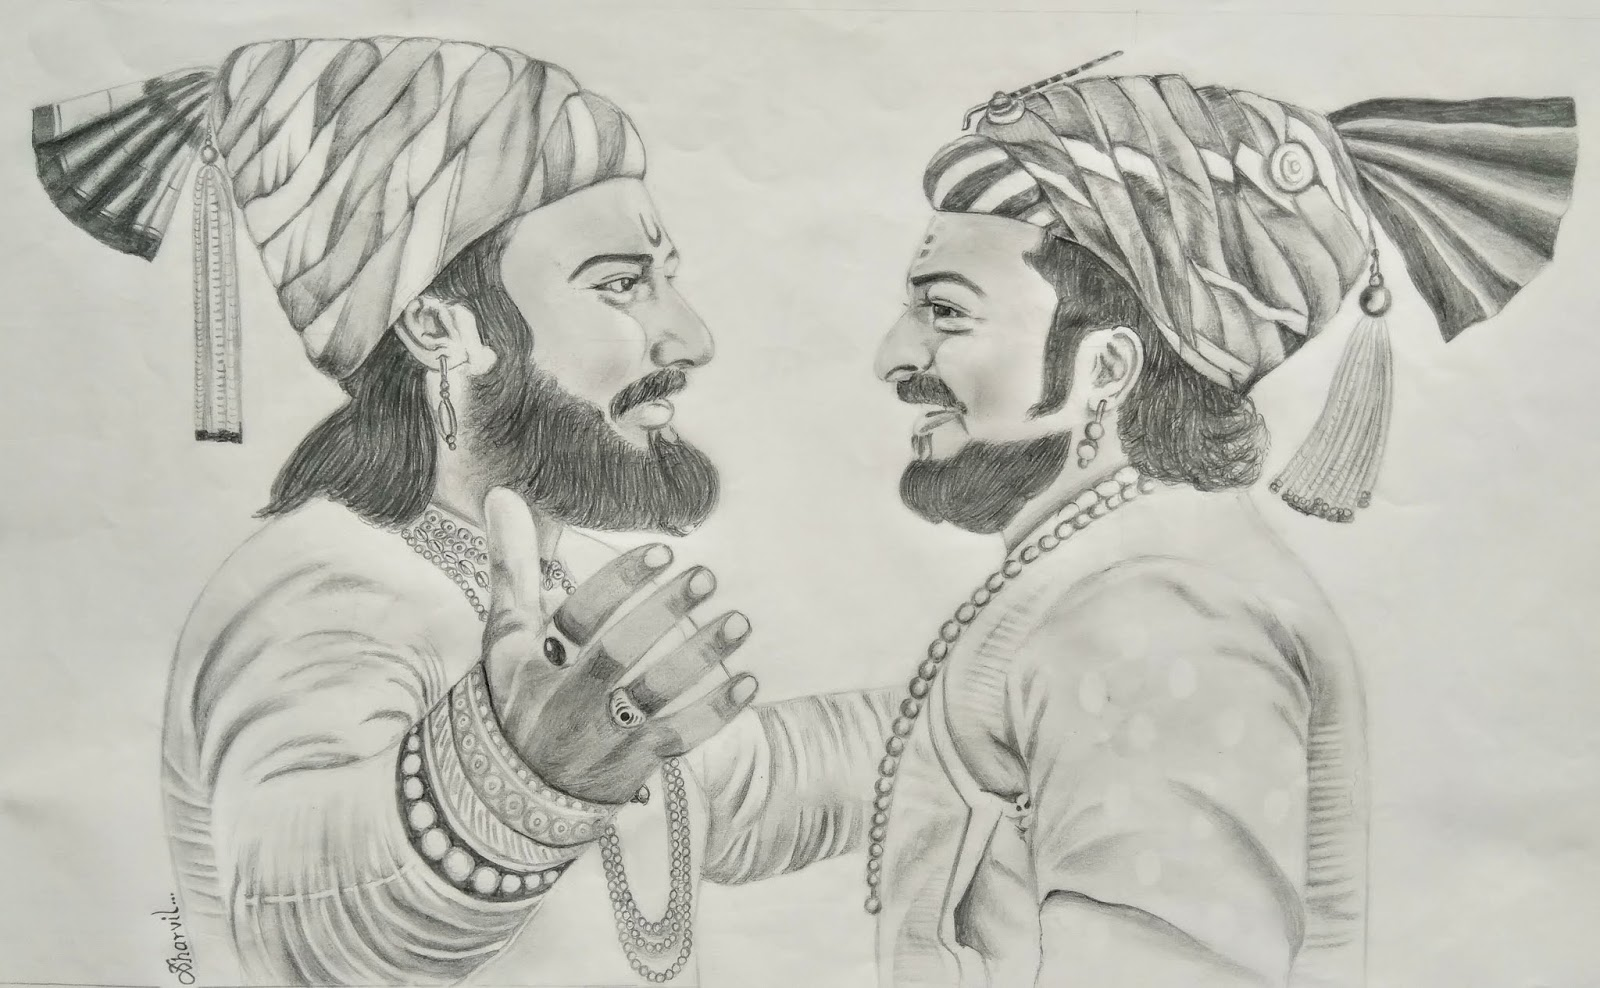 Chhatrapati shivaji maharaj and sambhaji maharaj sketch by sharvil patil